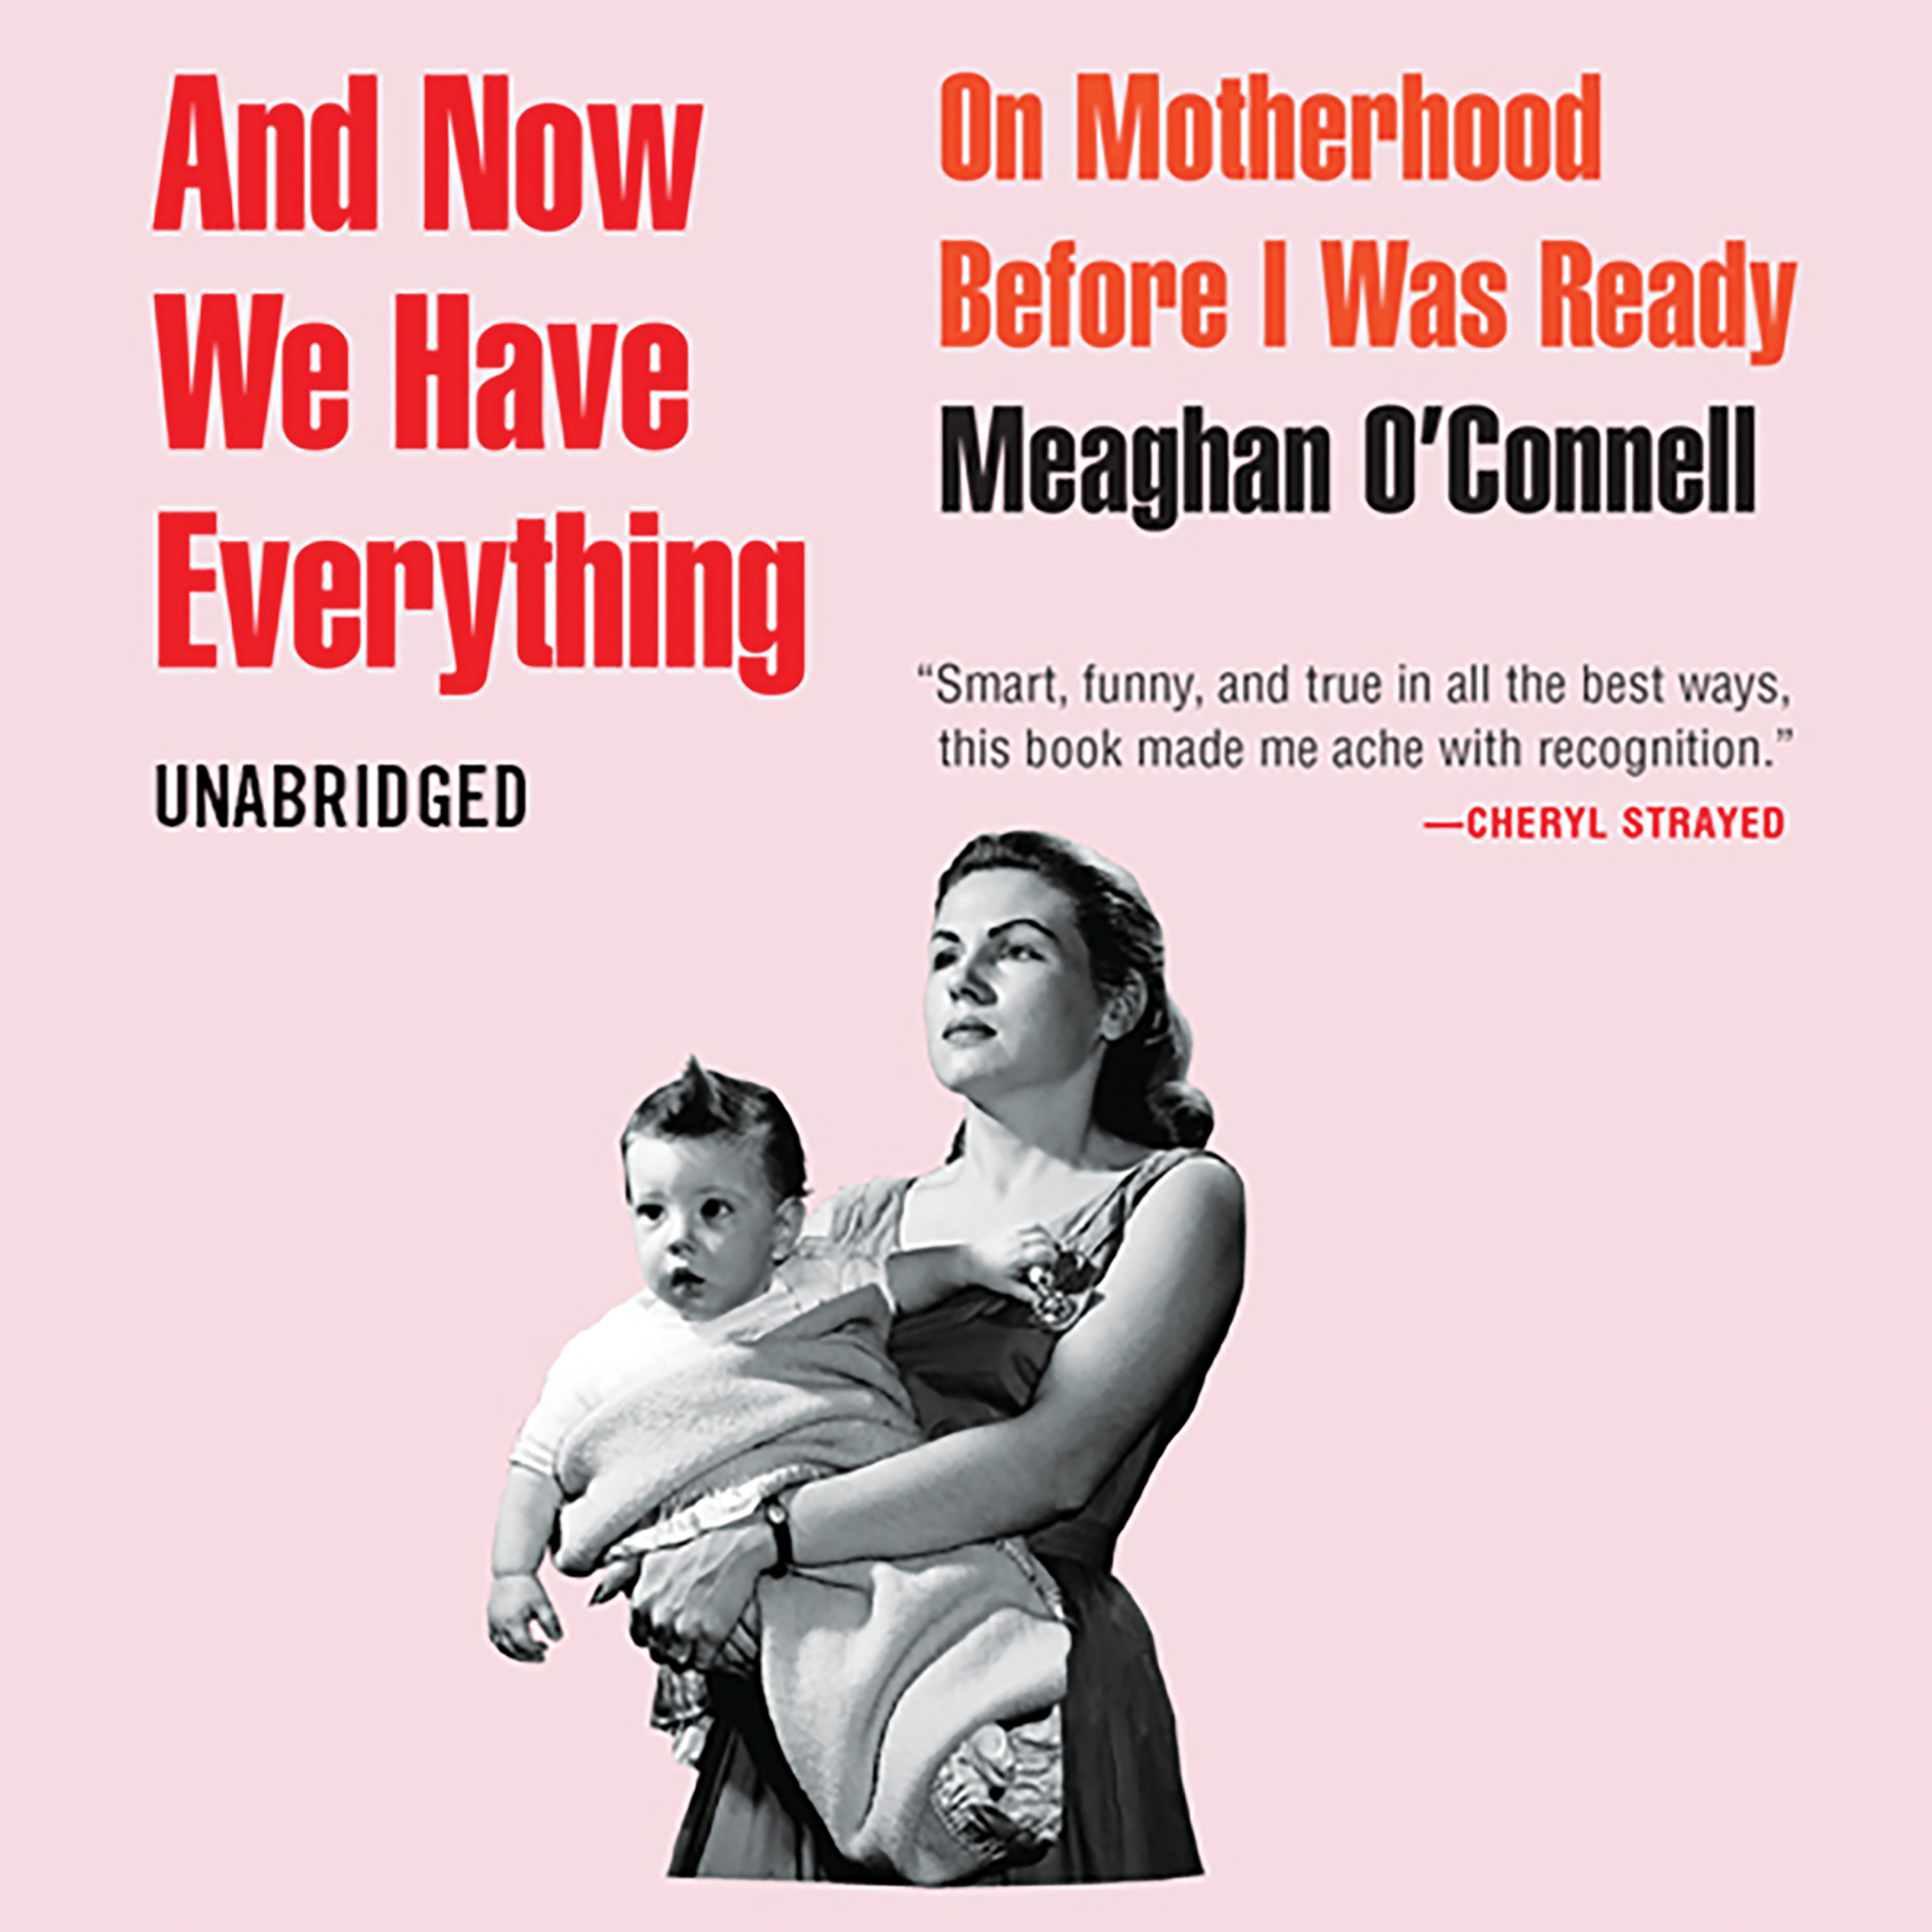 image for And Now We Have Everything: On Motherhood Before I Was Ready